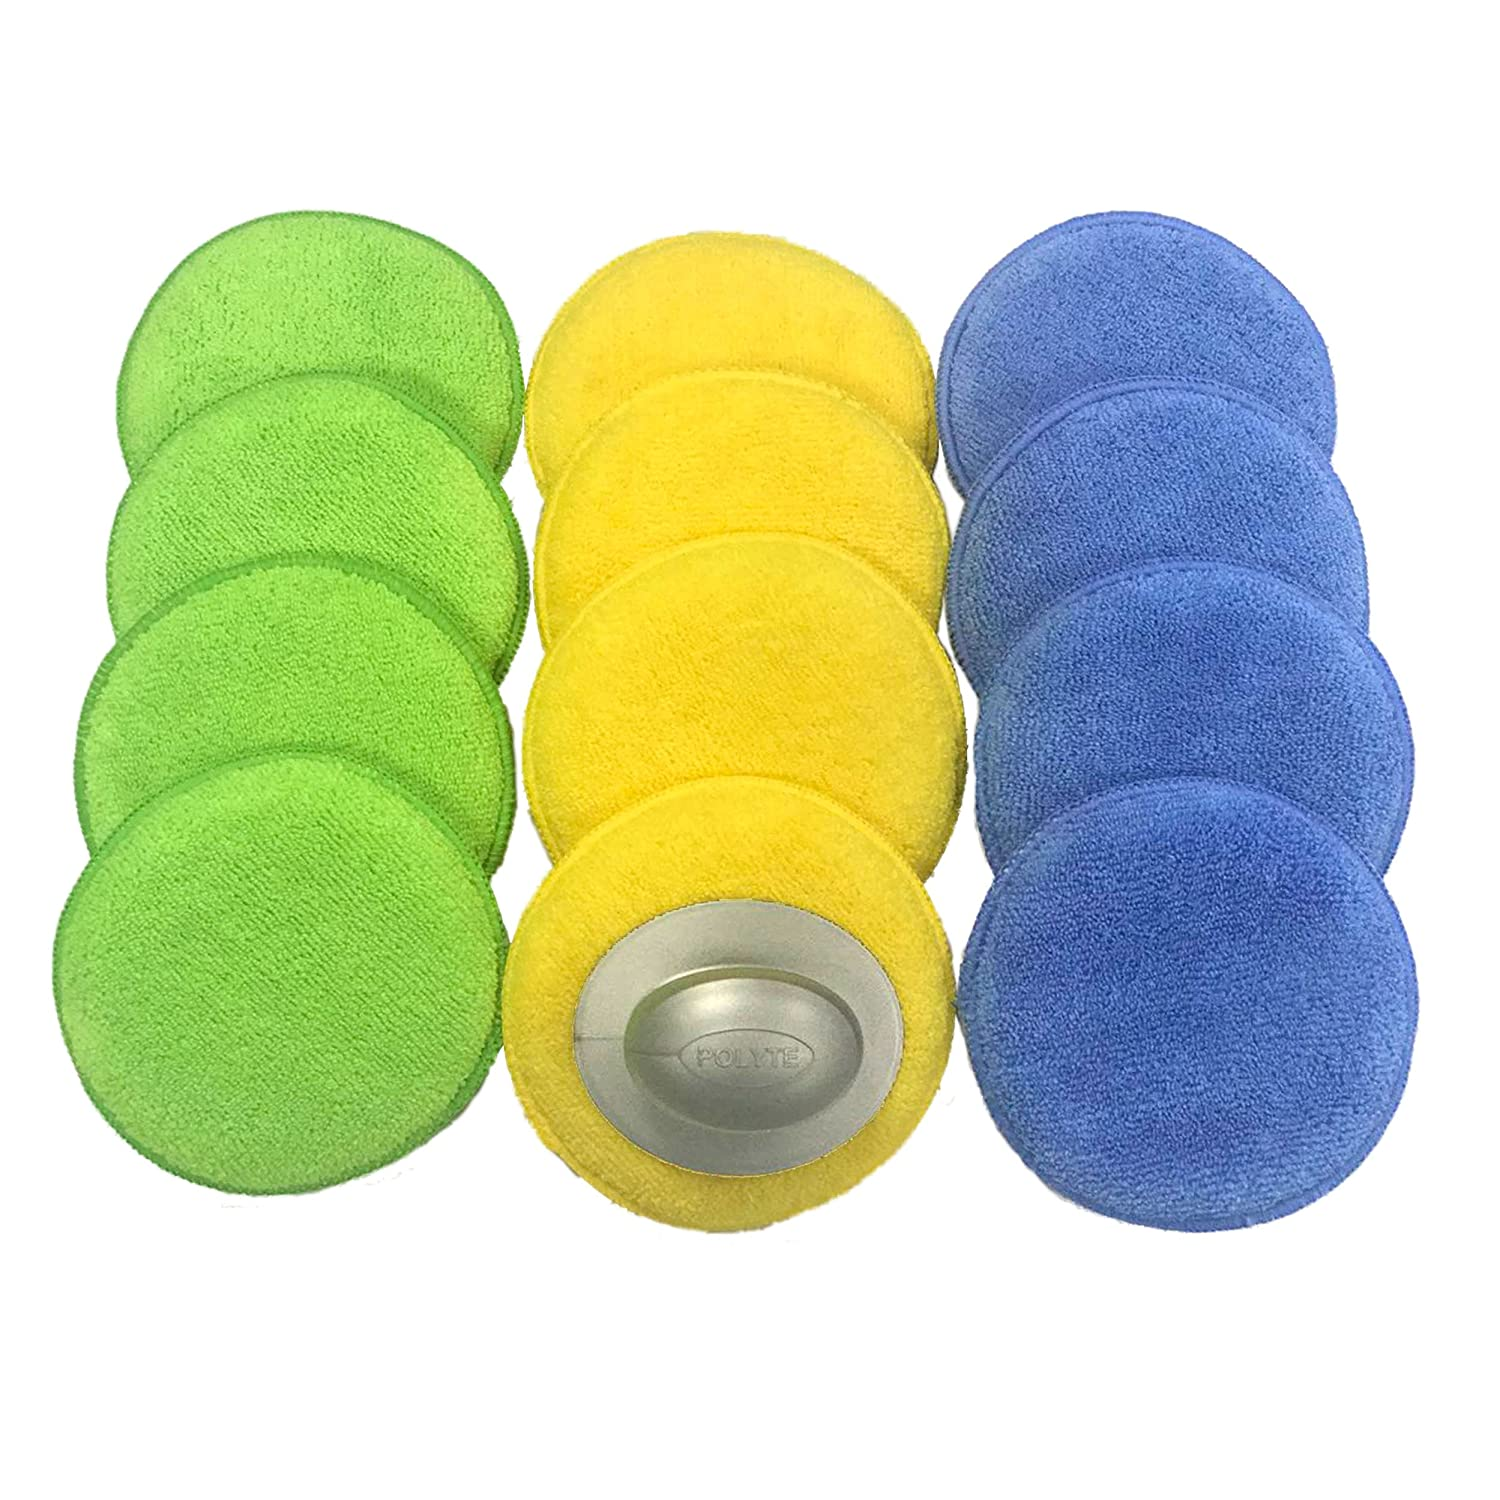 Green, 8 Pack 5 in, Polyte Microfiber Detailing Wax Applicator Pad